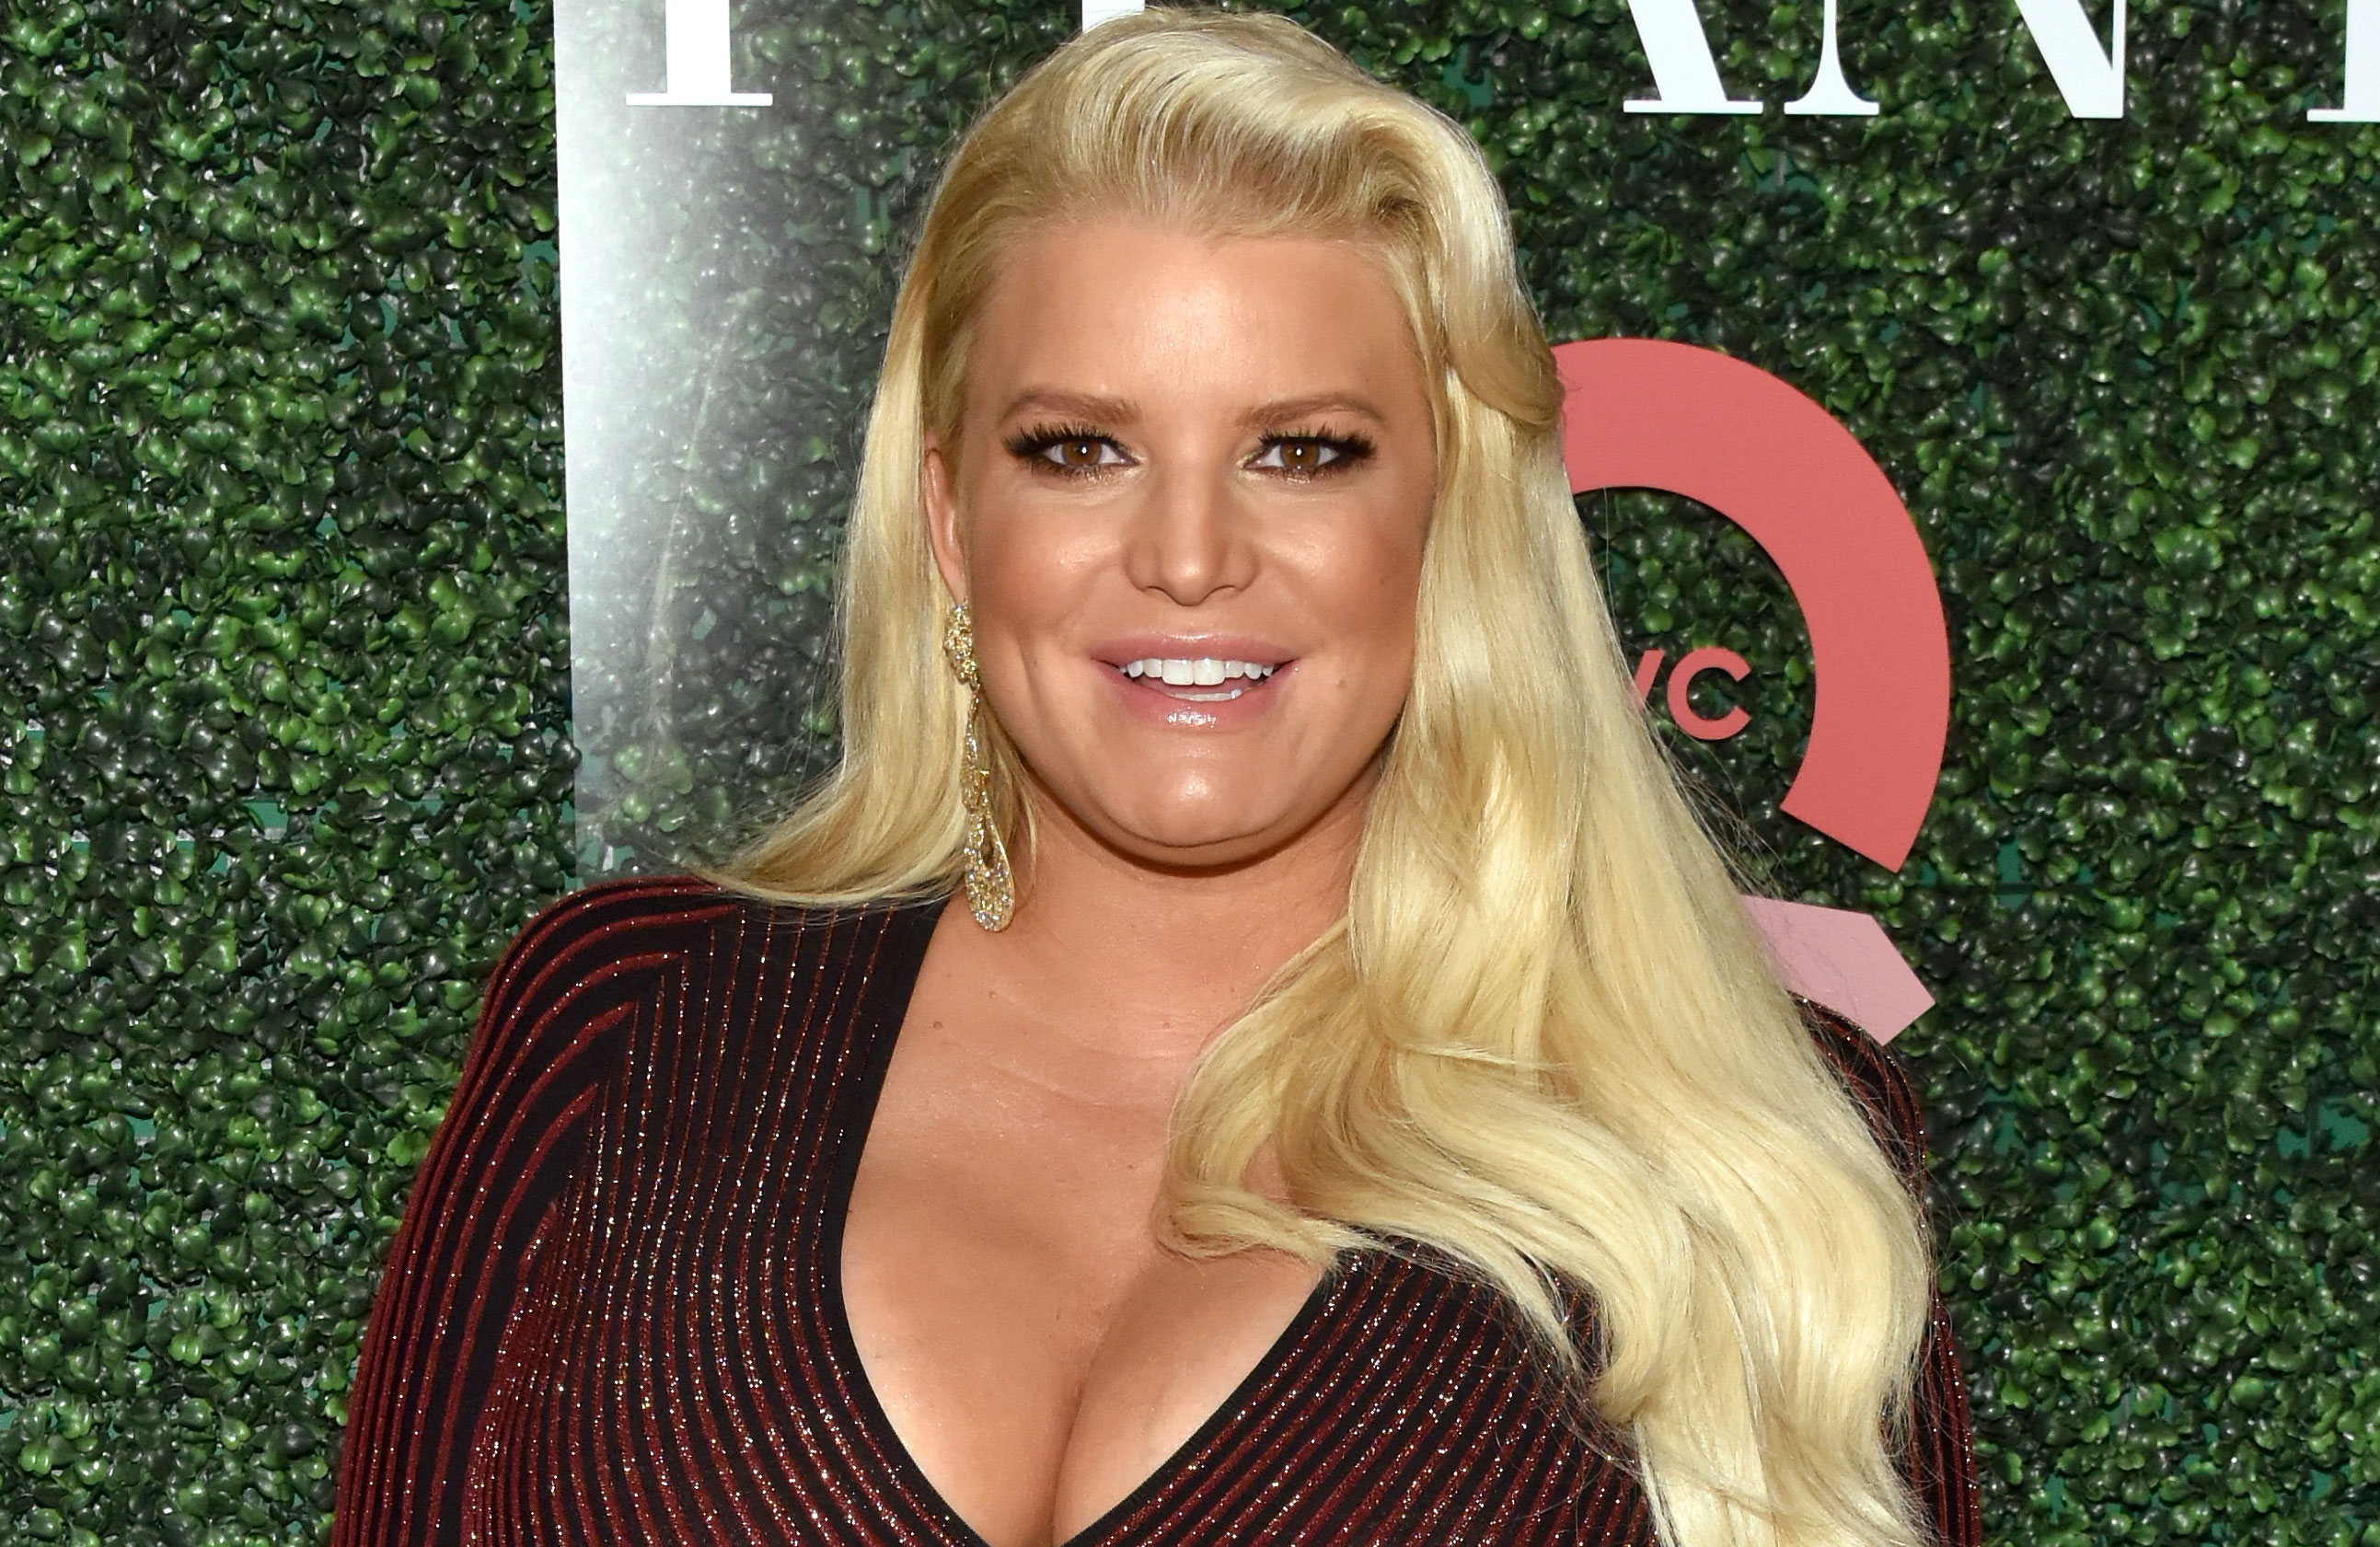 """Jessica Simpson Spends Mother's Day 2019 'Hormonally Crying' 25th Annual QVC """"FFANY Shoes on Sale"""" Gala - Jessica Simpson attends the 25th Annual QVC """"FFANY Shoes on Sale"""" Gala at The Ziegfeld Ballroom on October 11, 2018 in New York City."""